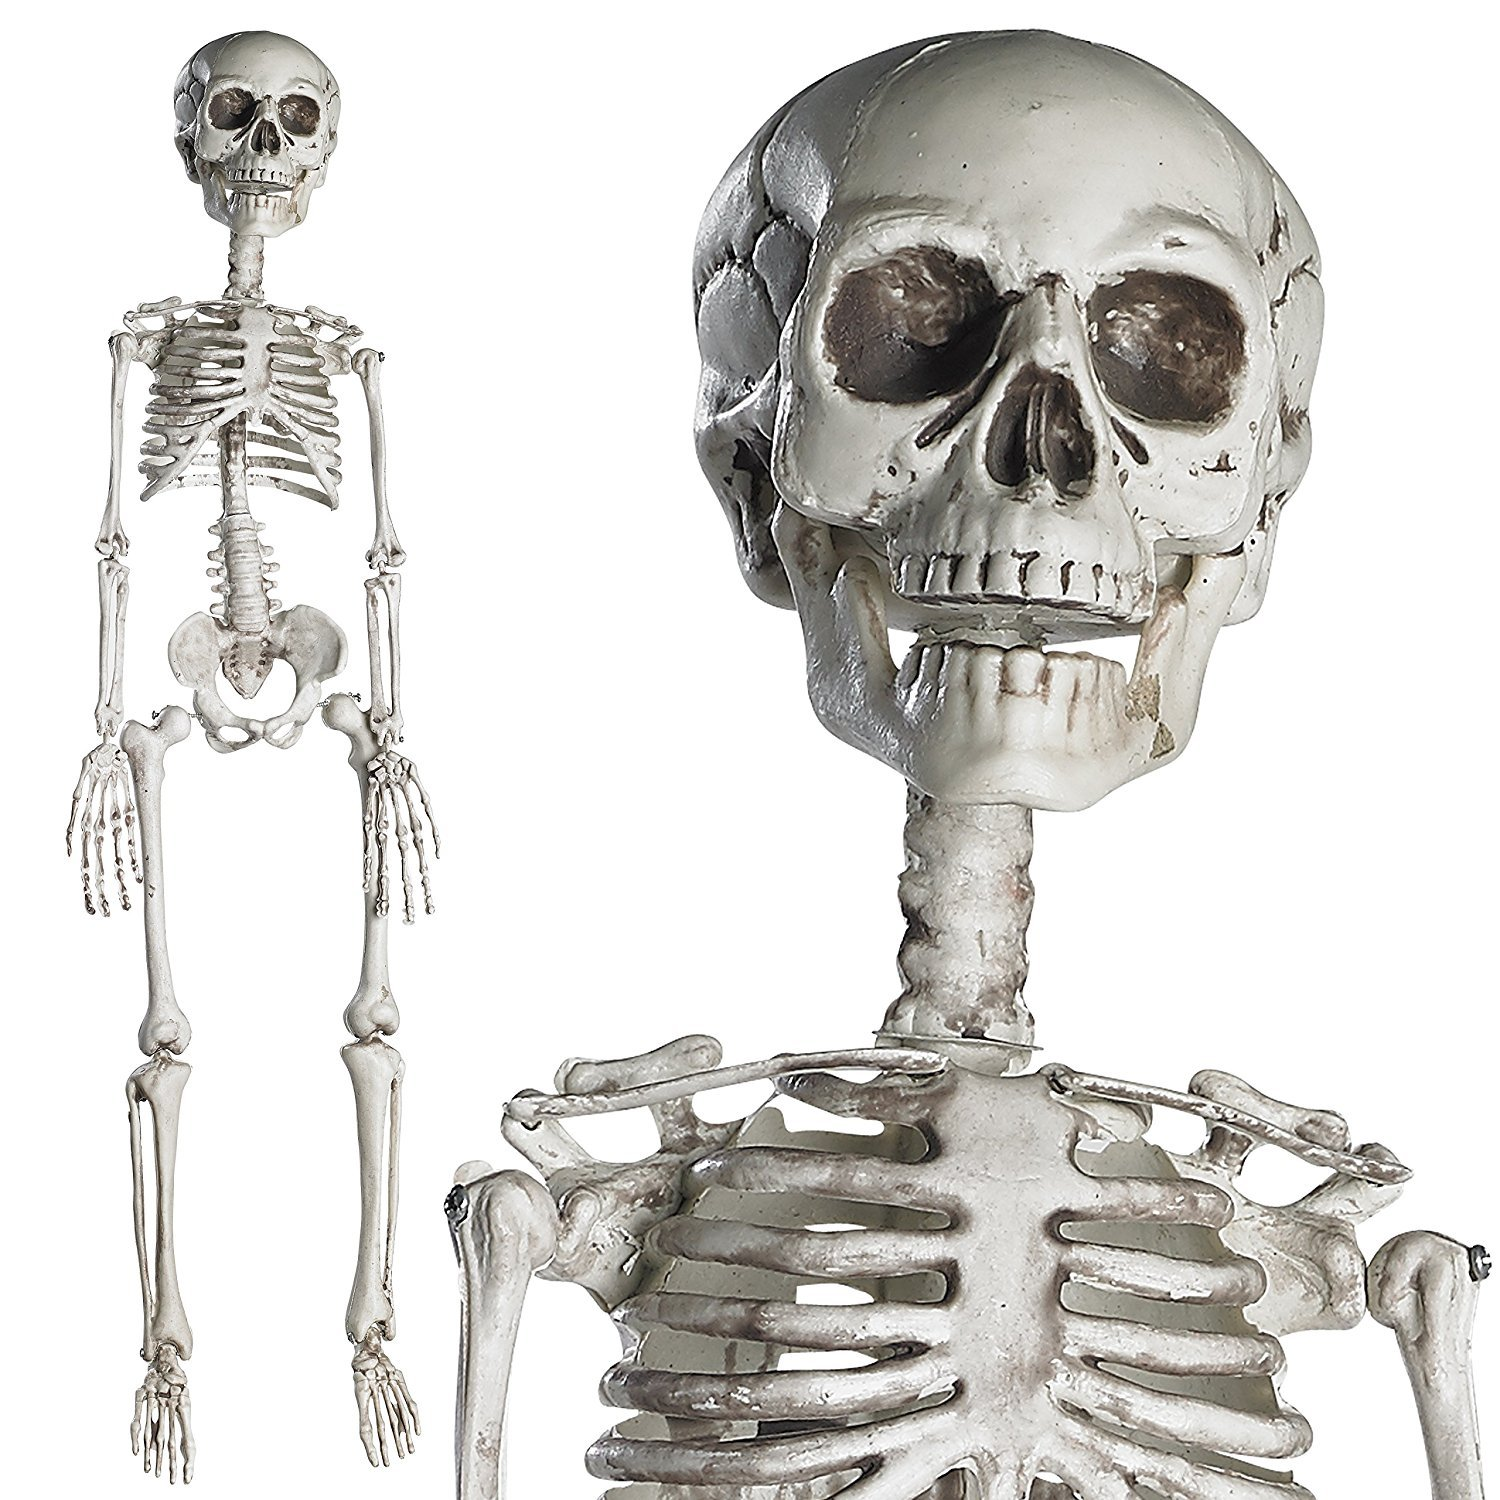 Prextex 76cm Halloween Skeleton- Full Body Halloween Skeleton with Movable Joints for Best Halloween Decoration